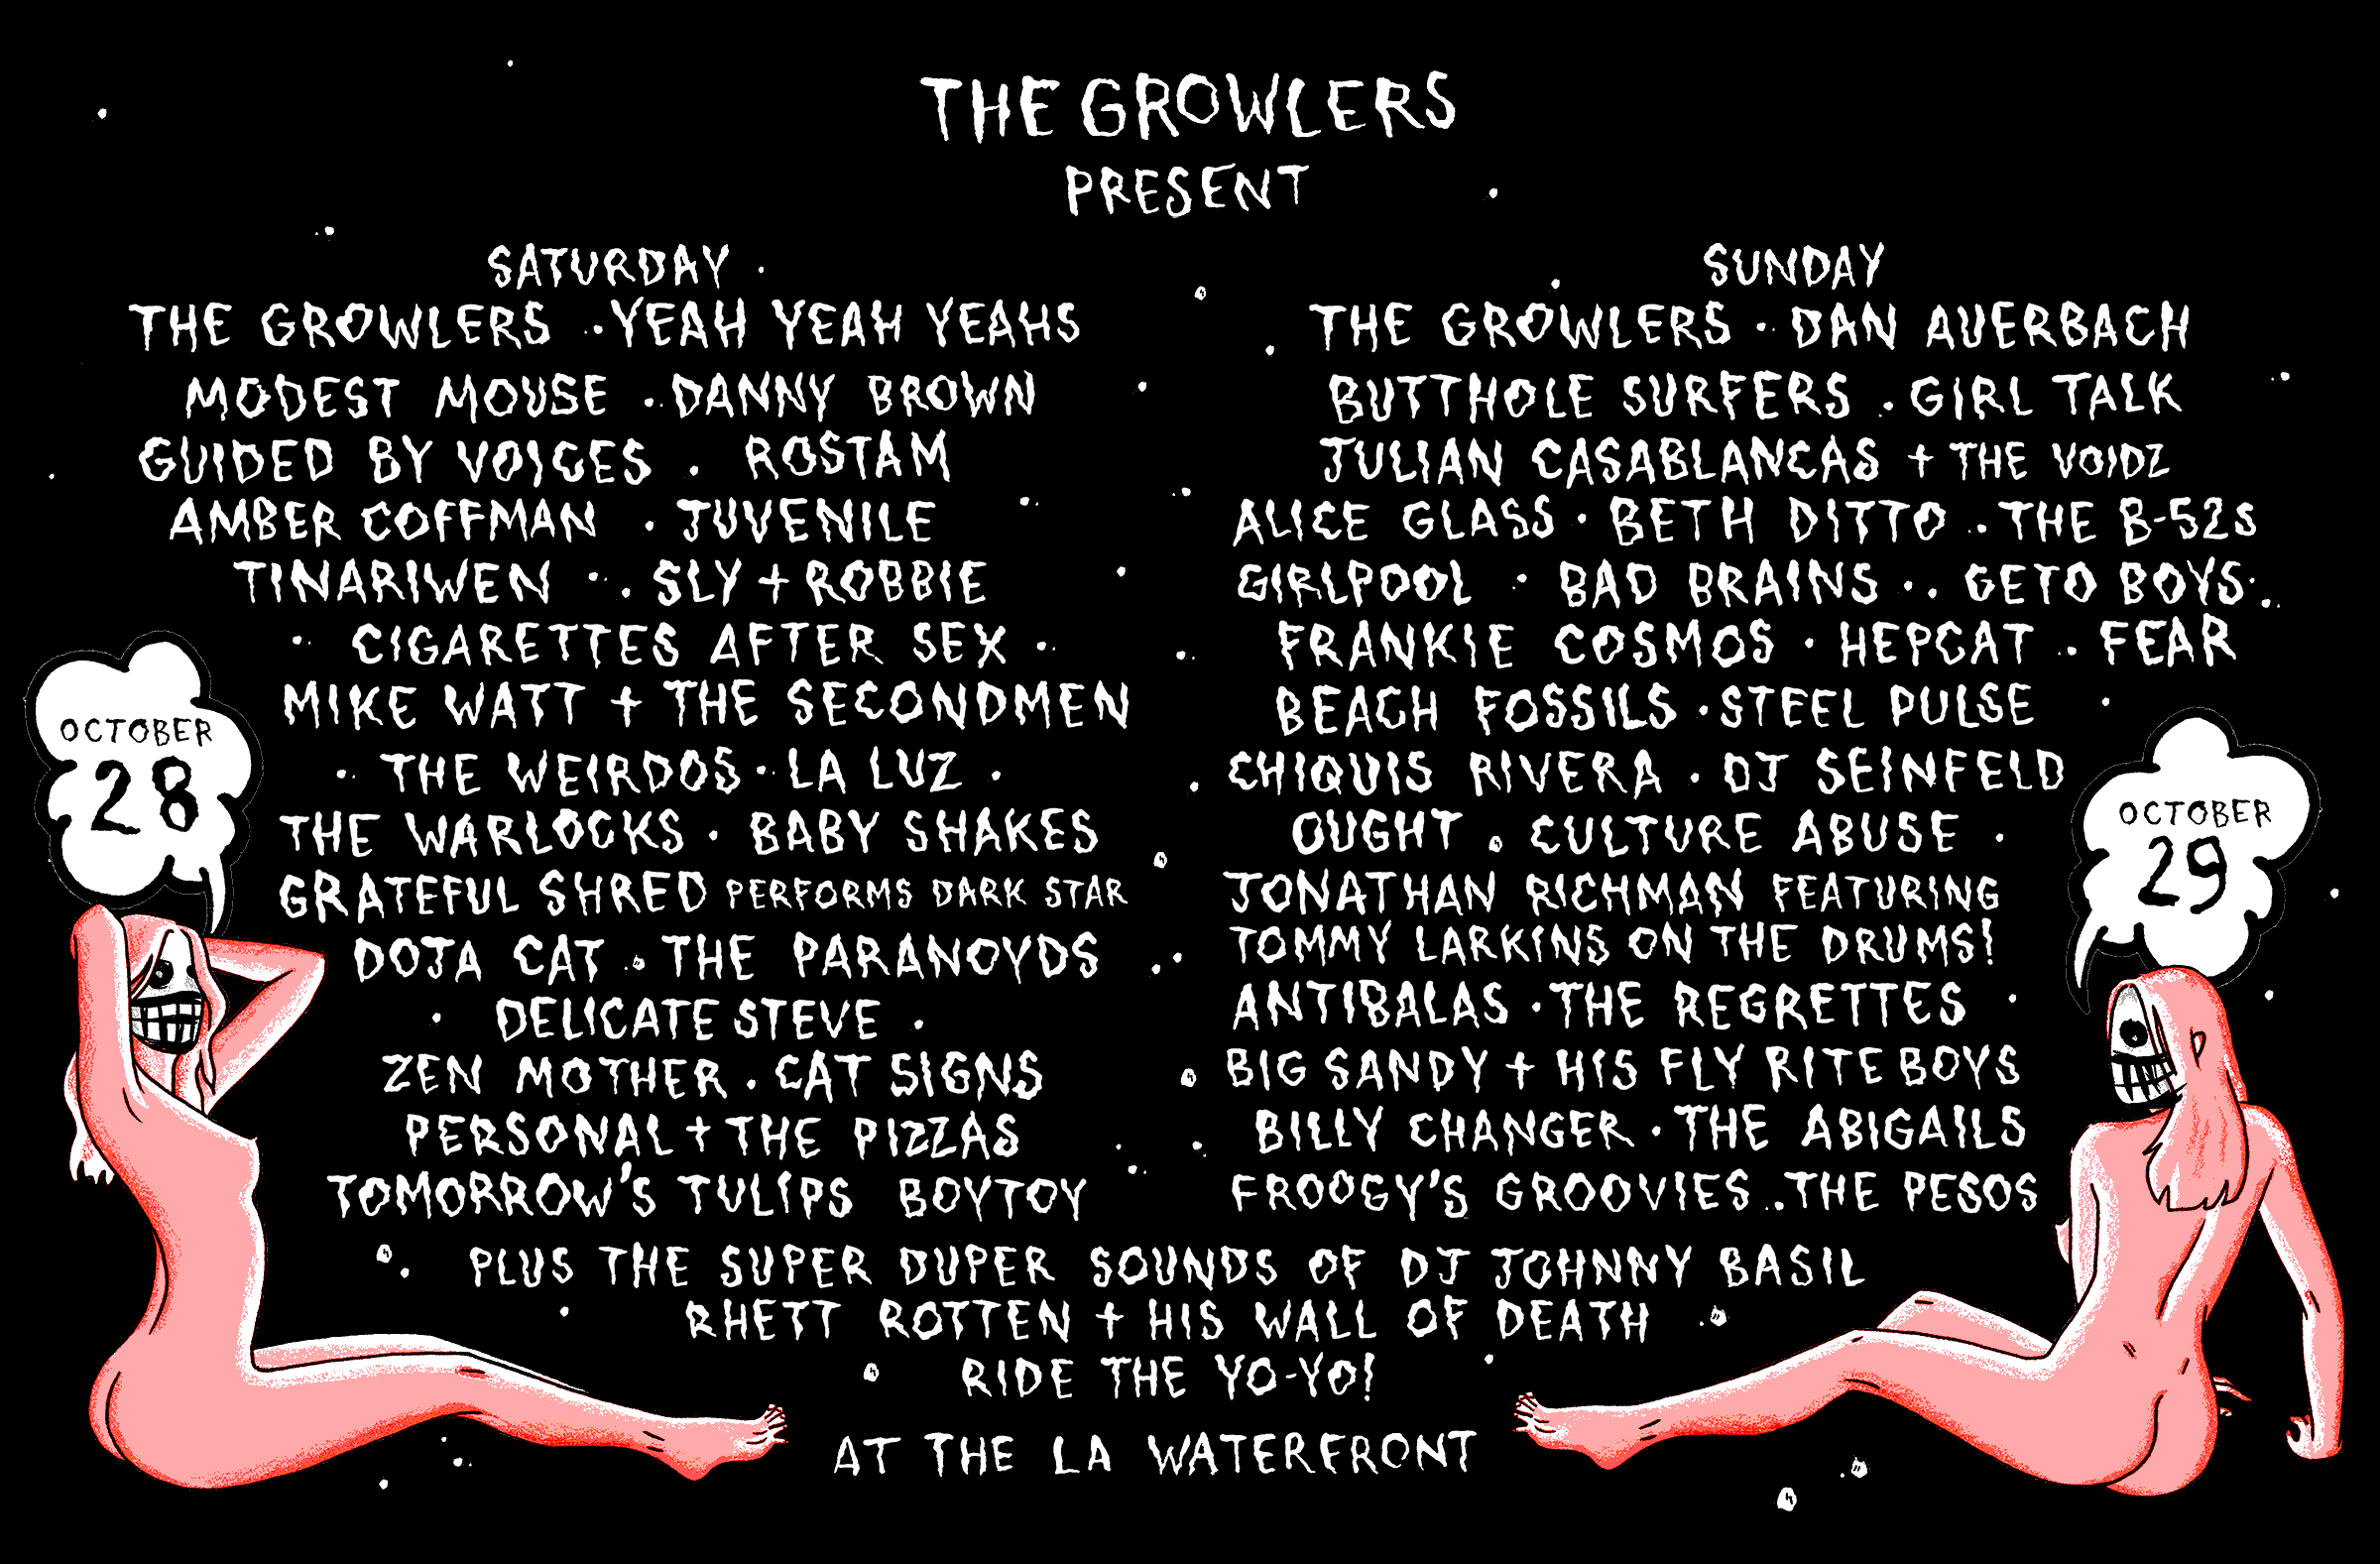 The Growlers Six Festival